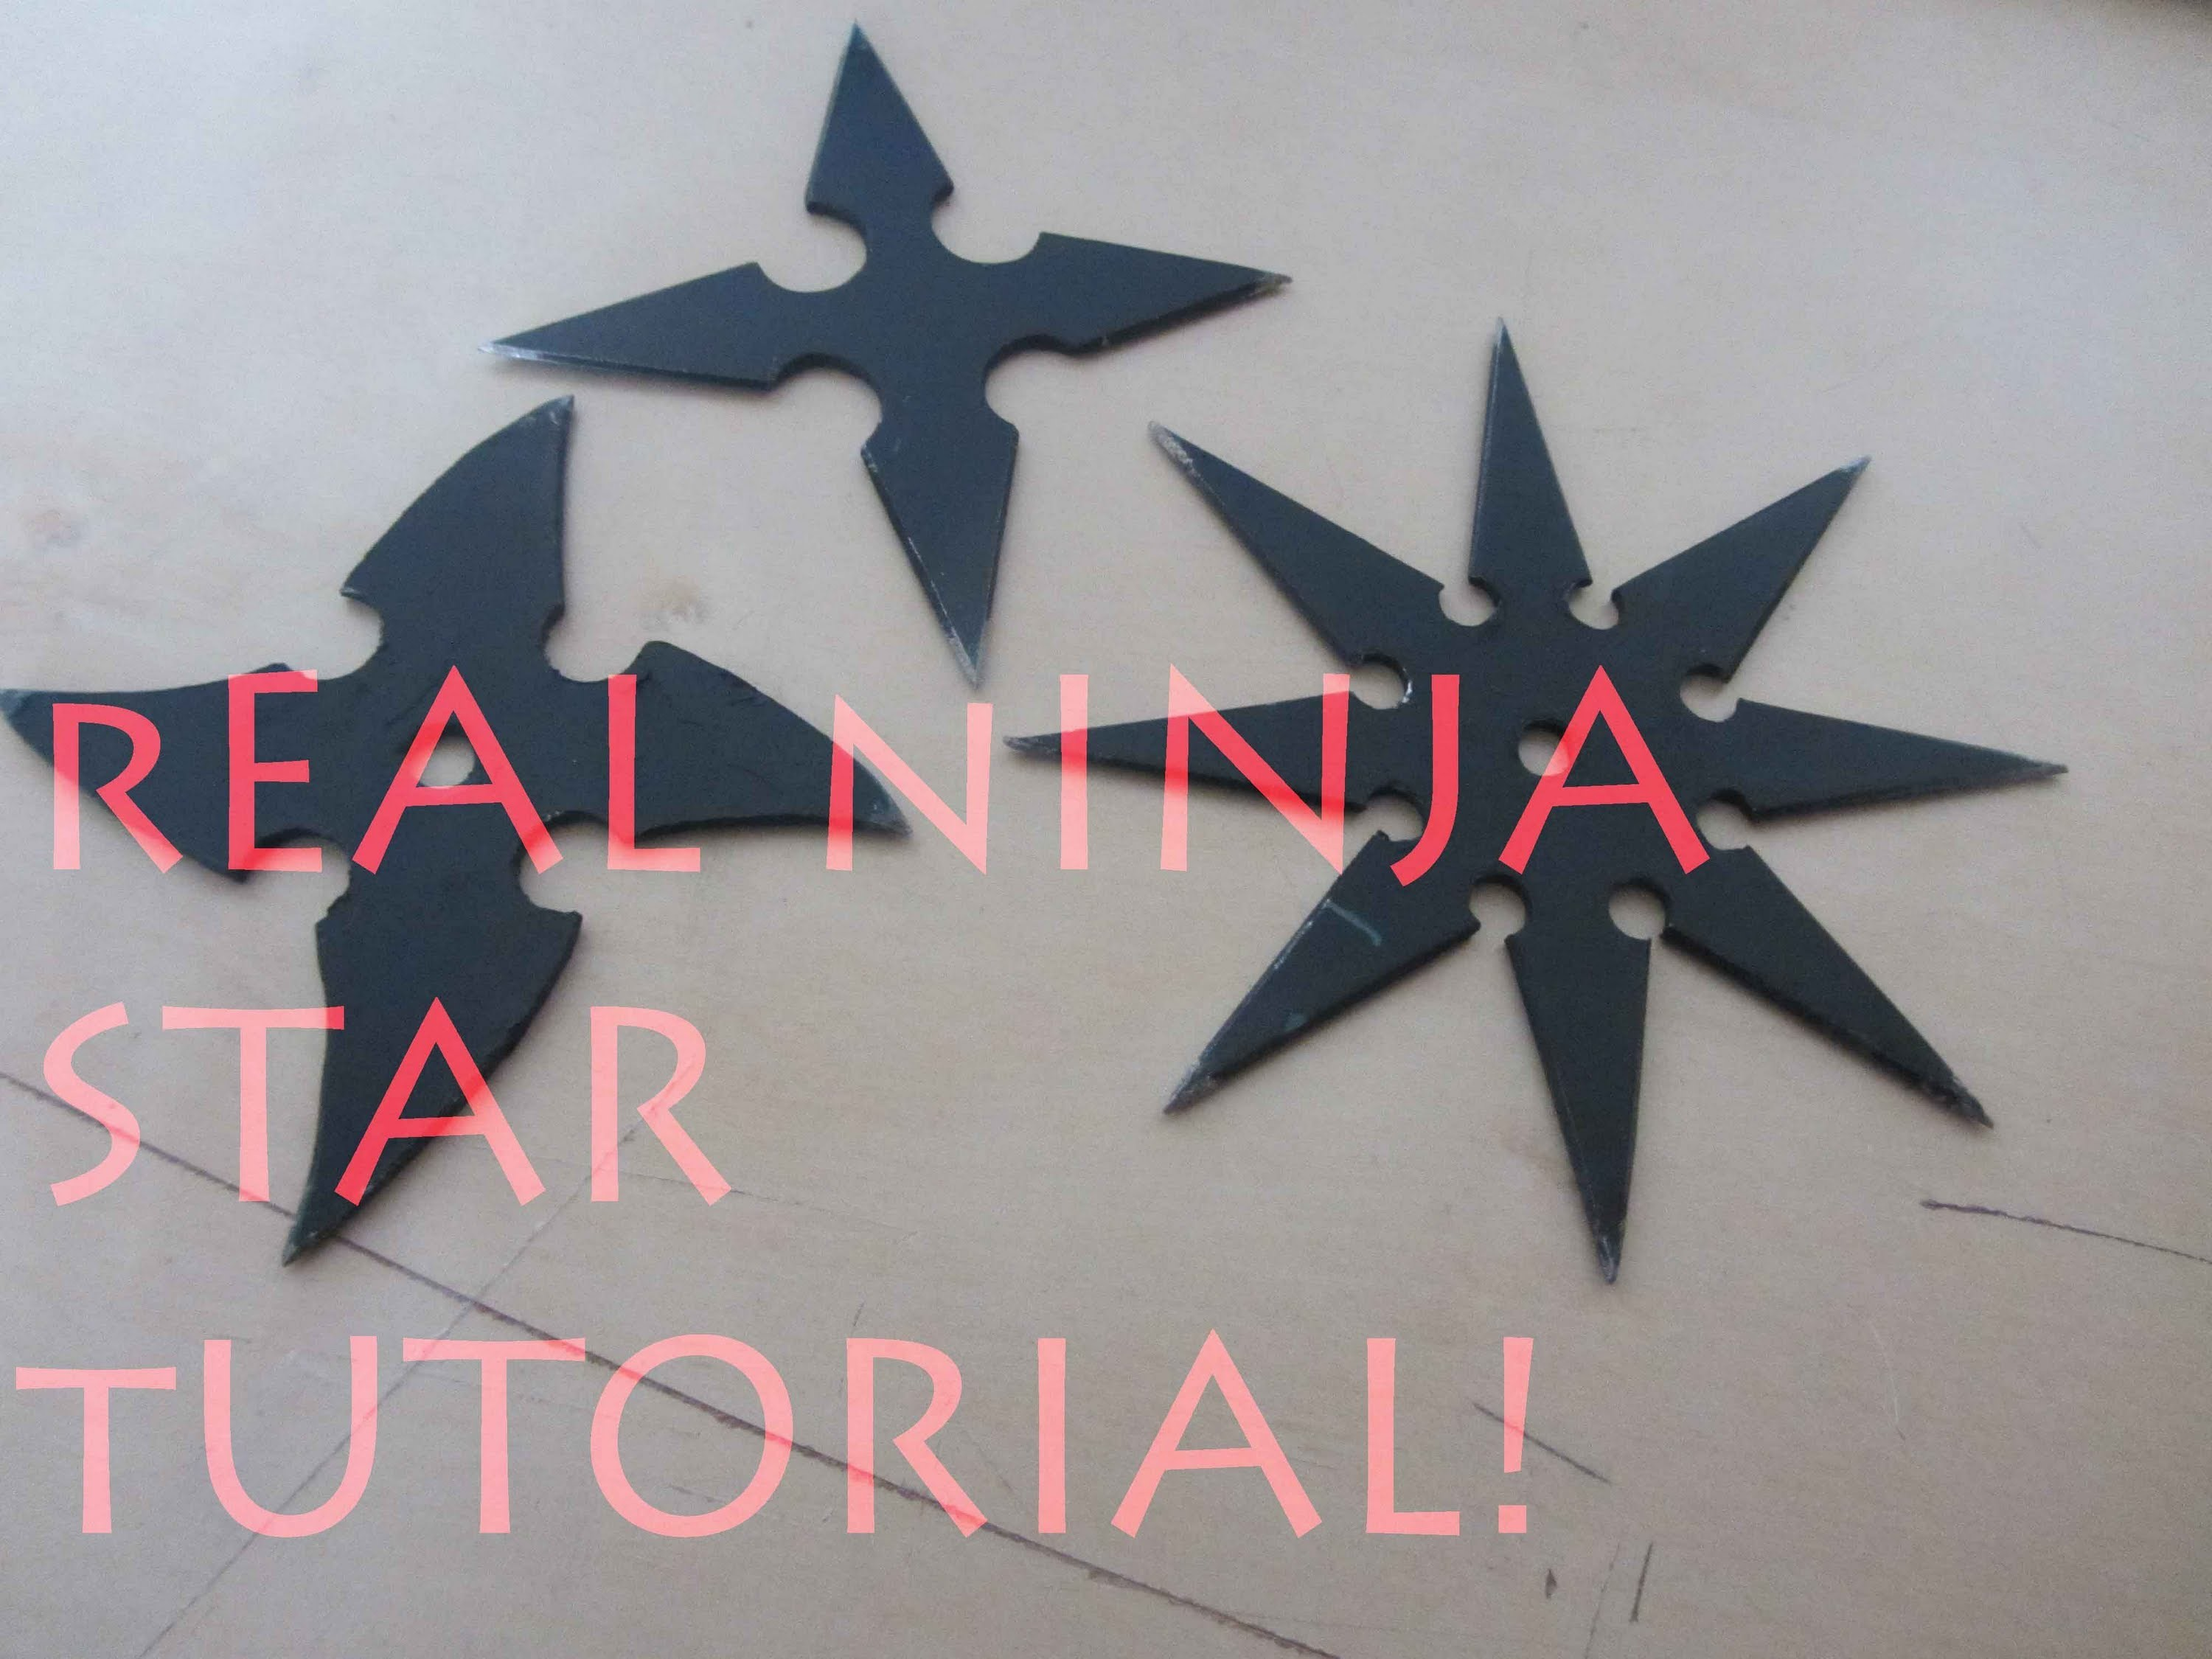 How To Make a Real Ninja Star. Shuriken - The Art Of Weapons